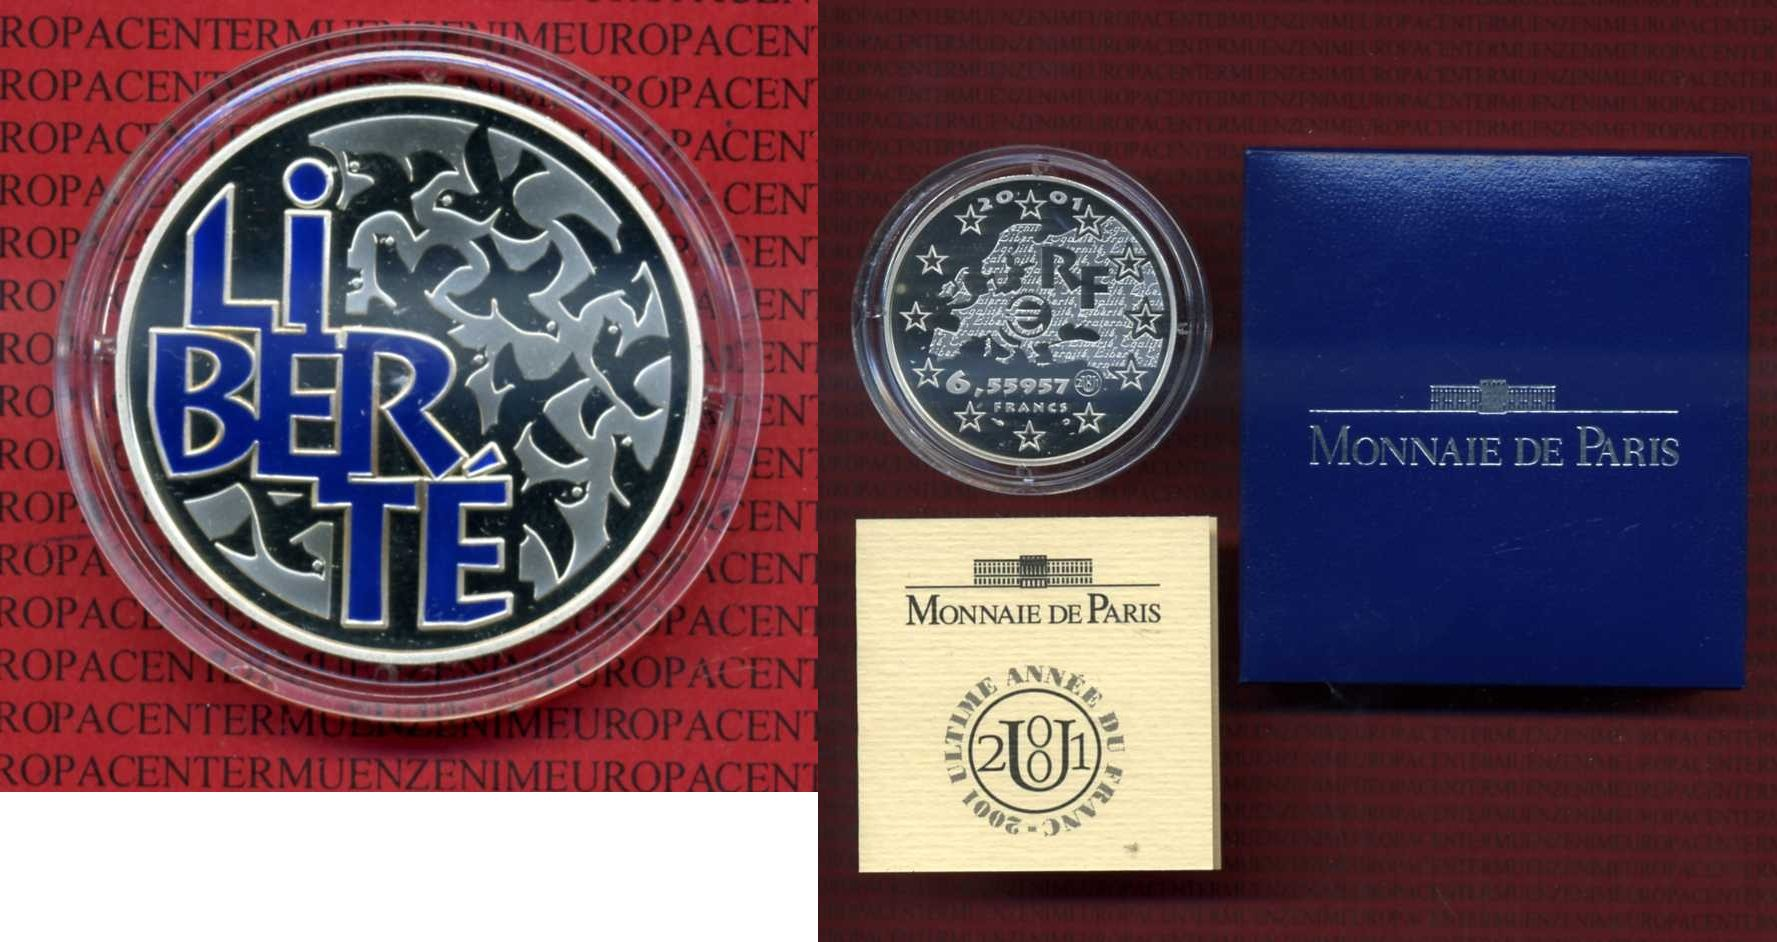 Frankreich Frankreich 6,5 Francs 2001- Liberte- Box Zertifikat Kapsel Farbmünze 1 Euro Silbermünze, 6,55957 Francs 2001 proof box coa colorated